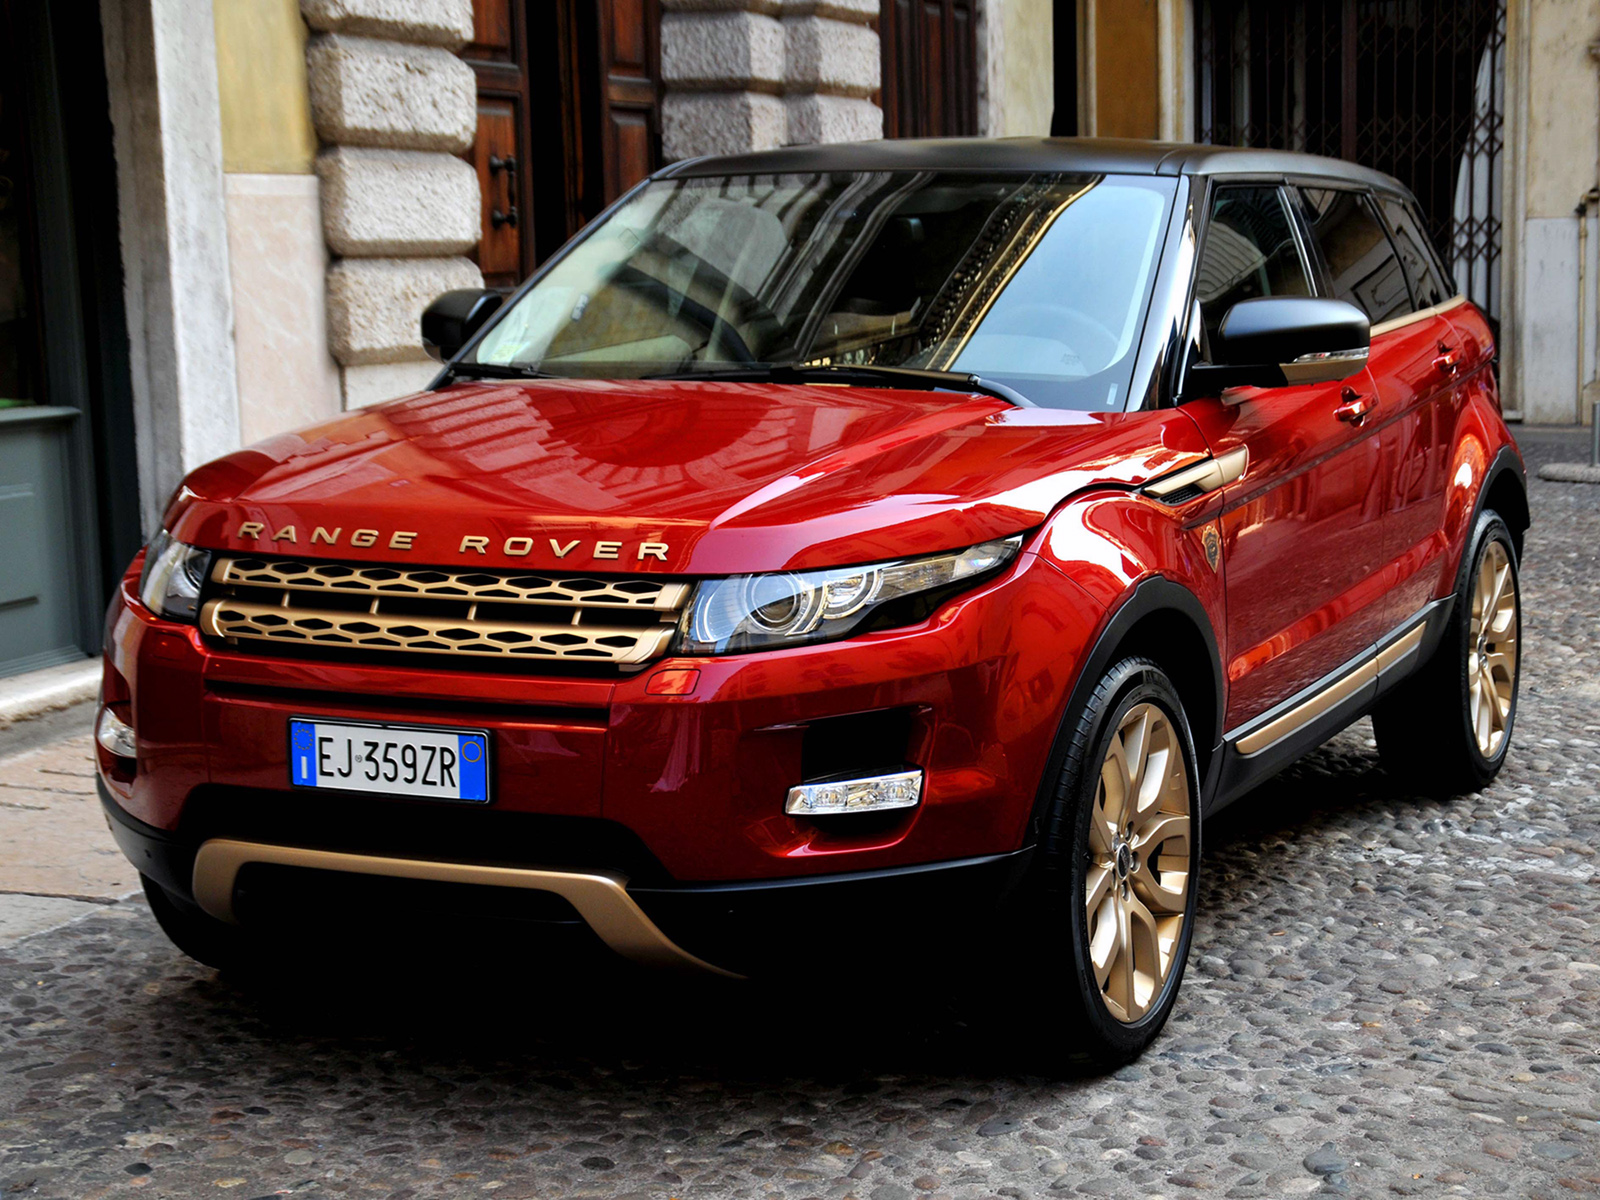 Range Rover Sport >> Red Range Rover Wallpaper - WallpaperSafari